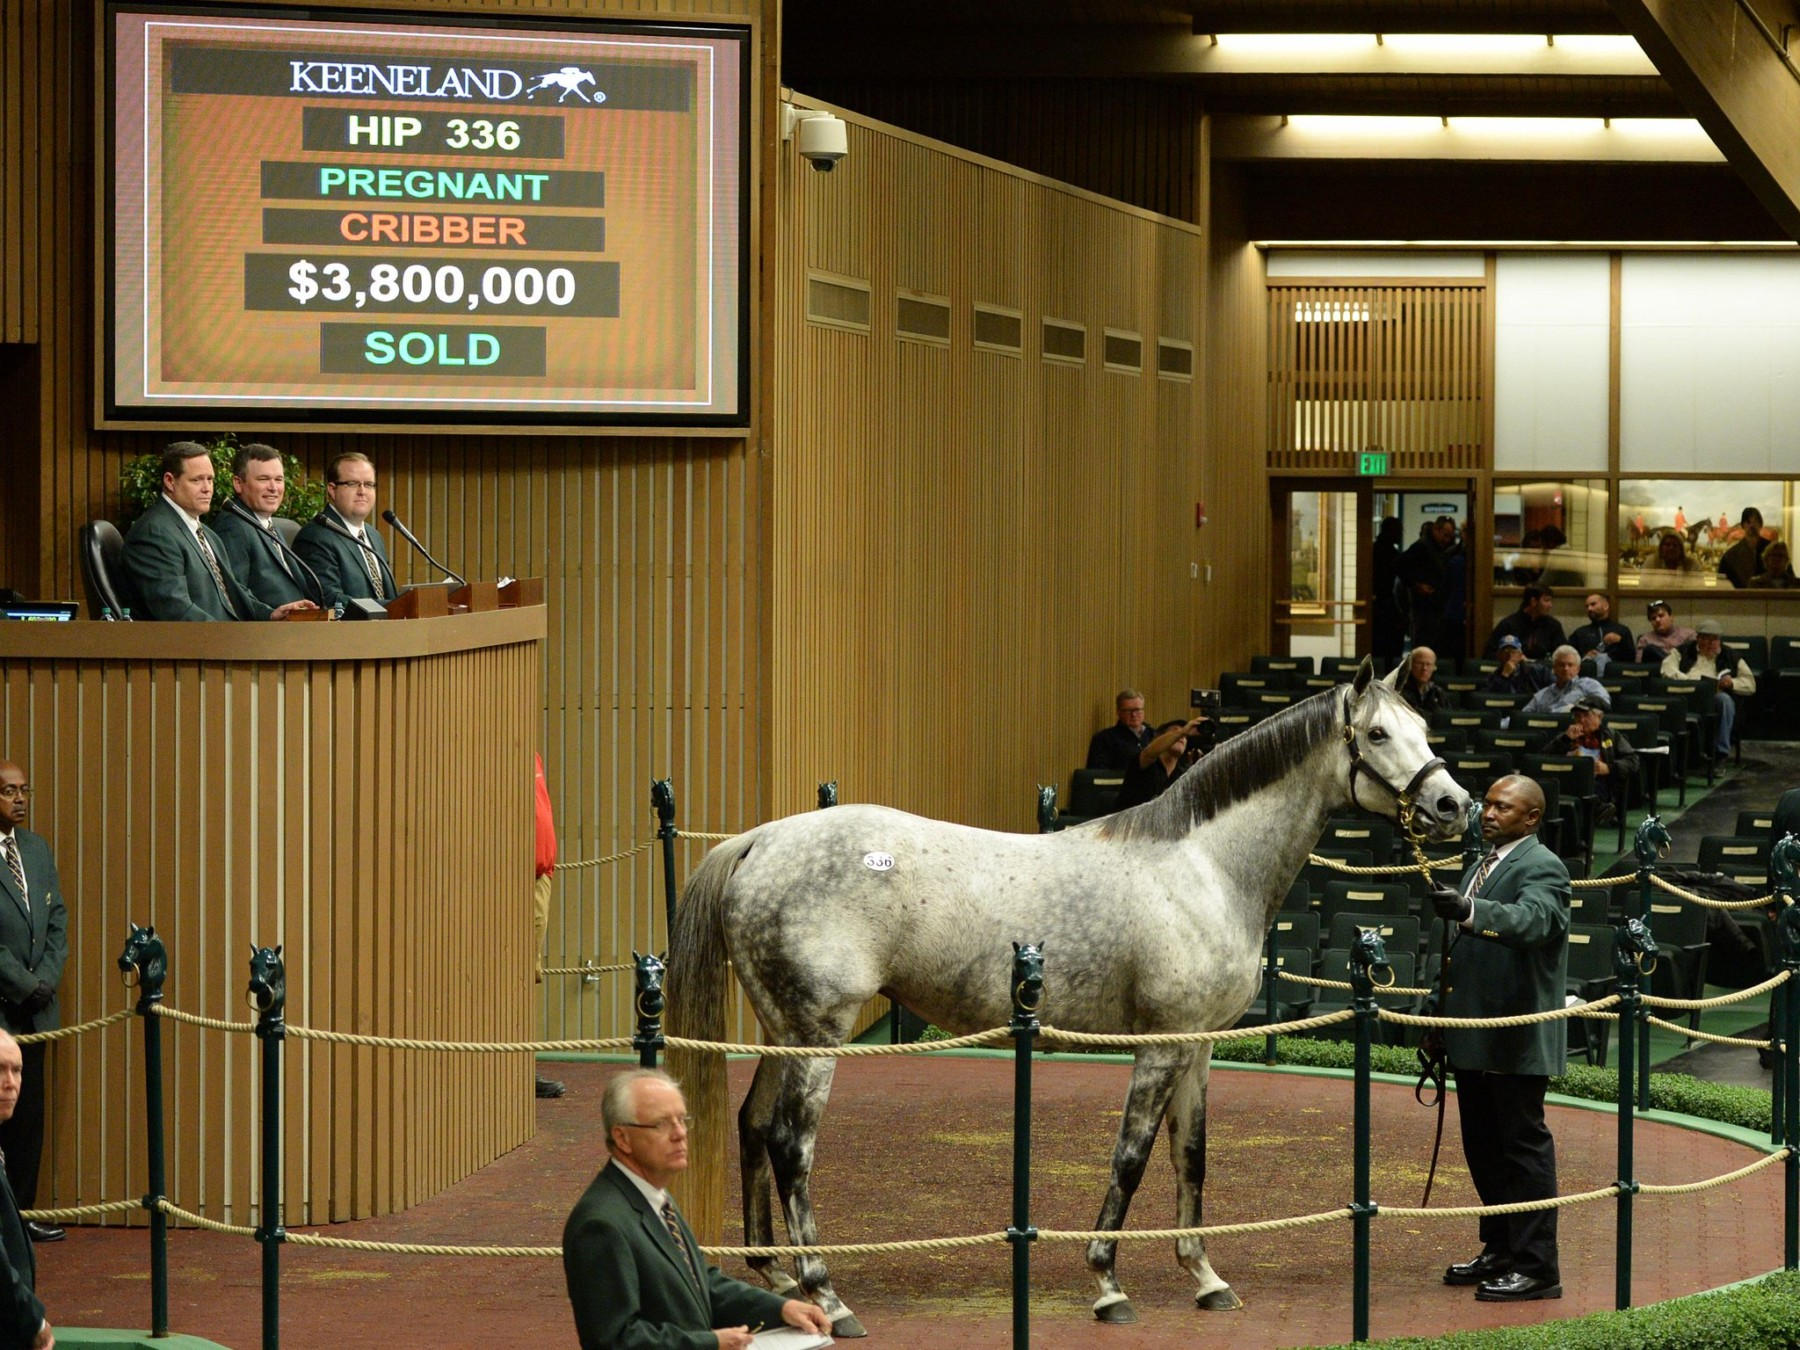 KEENELAND - Un top price à 3.800.000 $ pour Unrivaled Belle